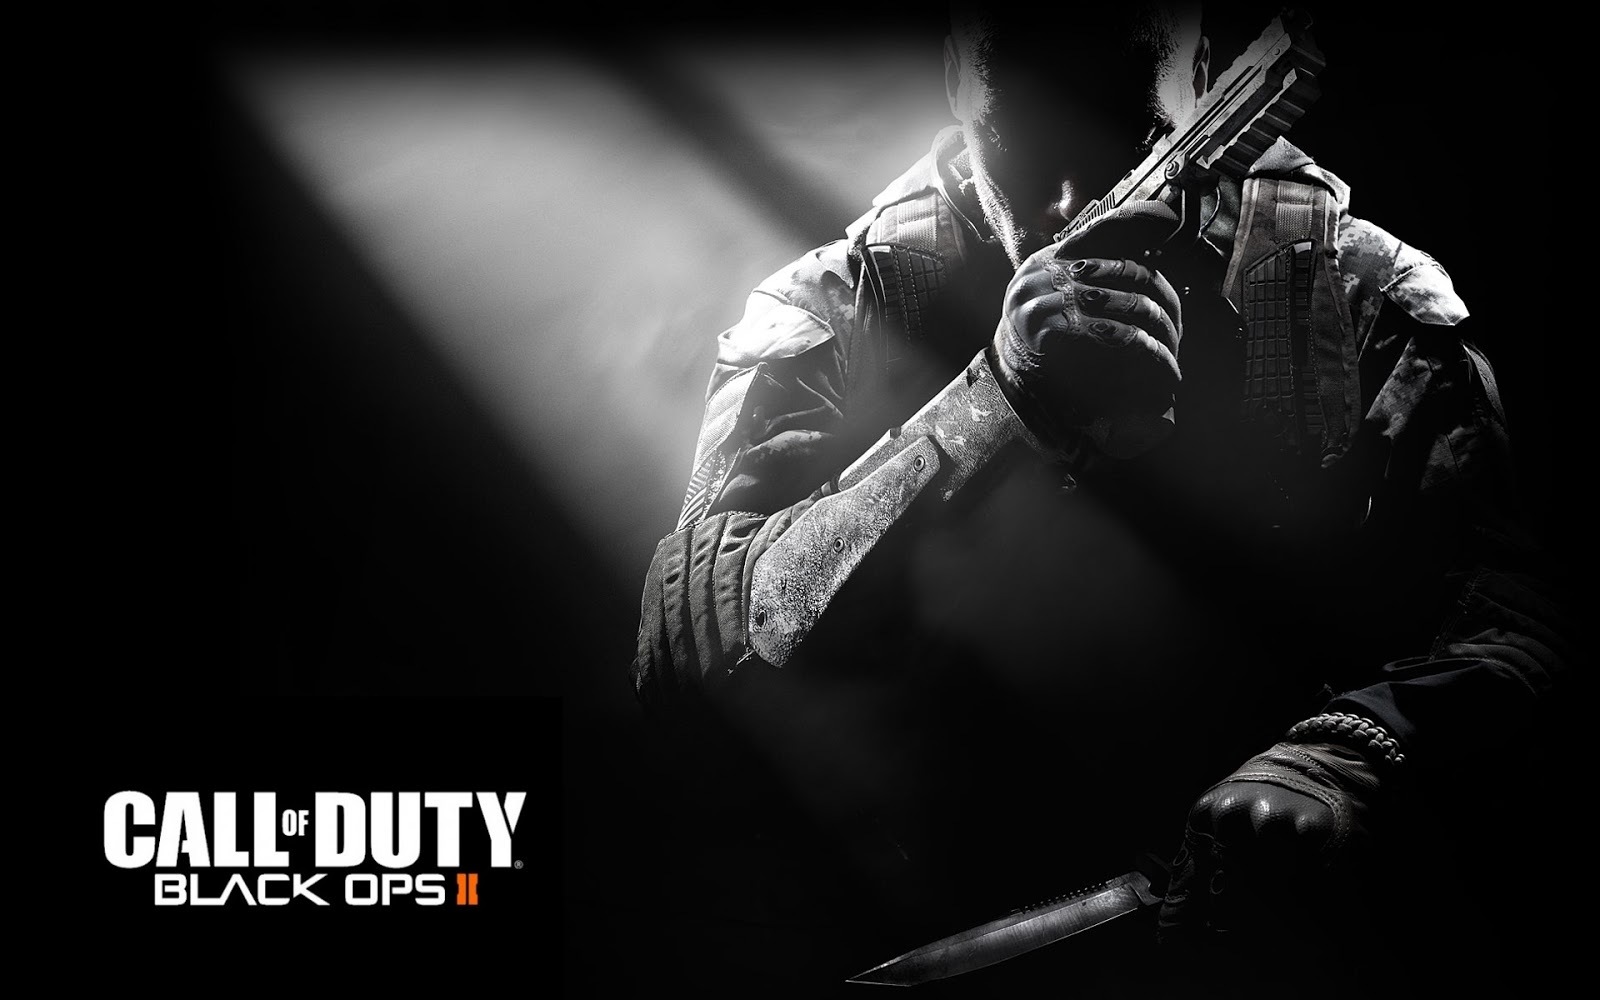 Call Of Duty Black Ops 3 Hd Wallpapers: HD WALLPAPERS: Call Of Duty Black Ops 2 HD Wallpapers